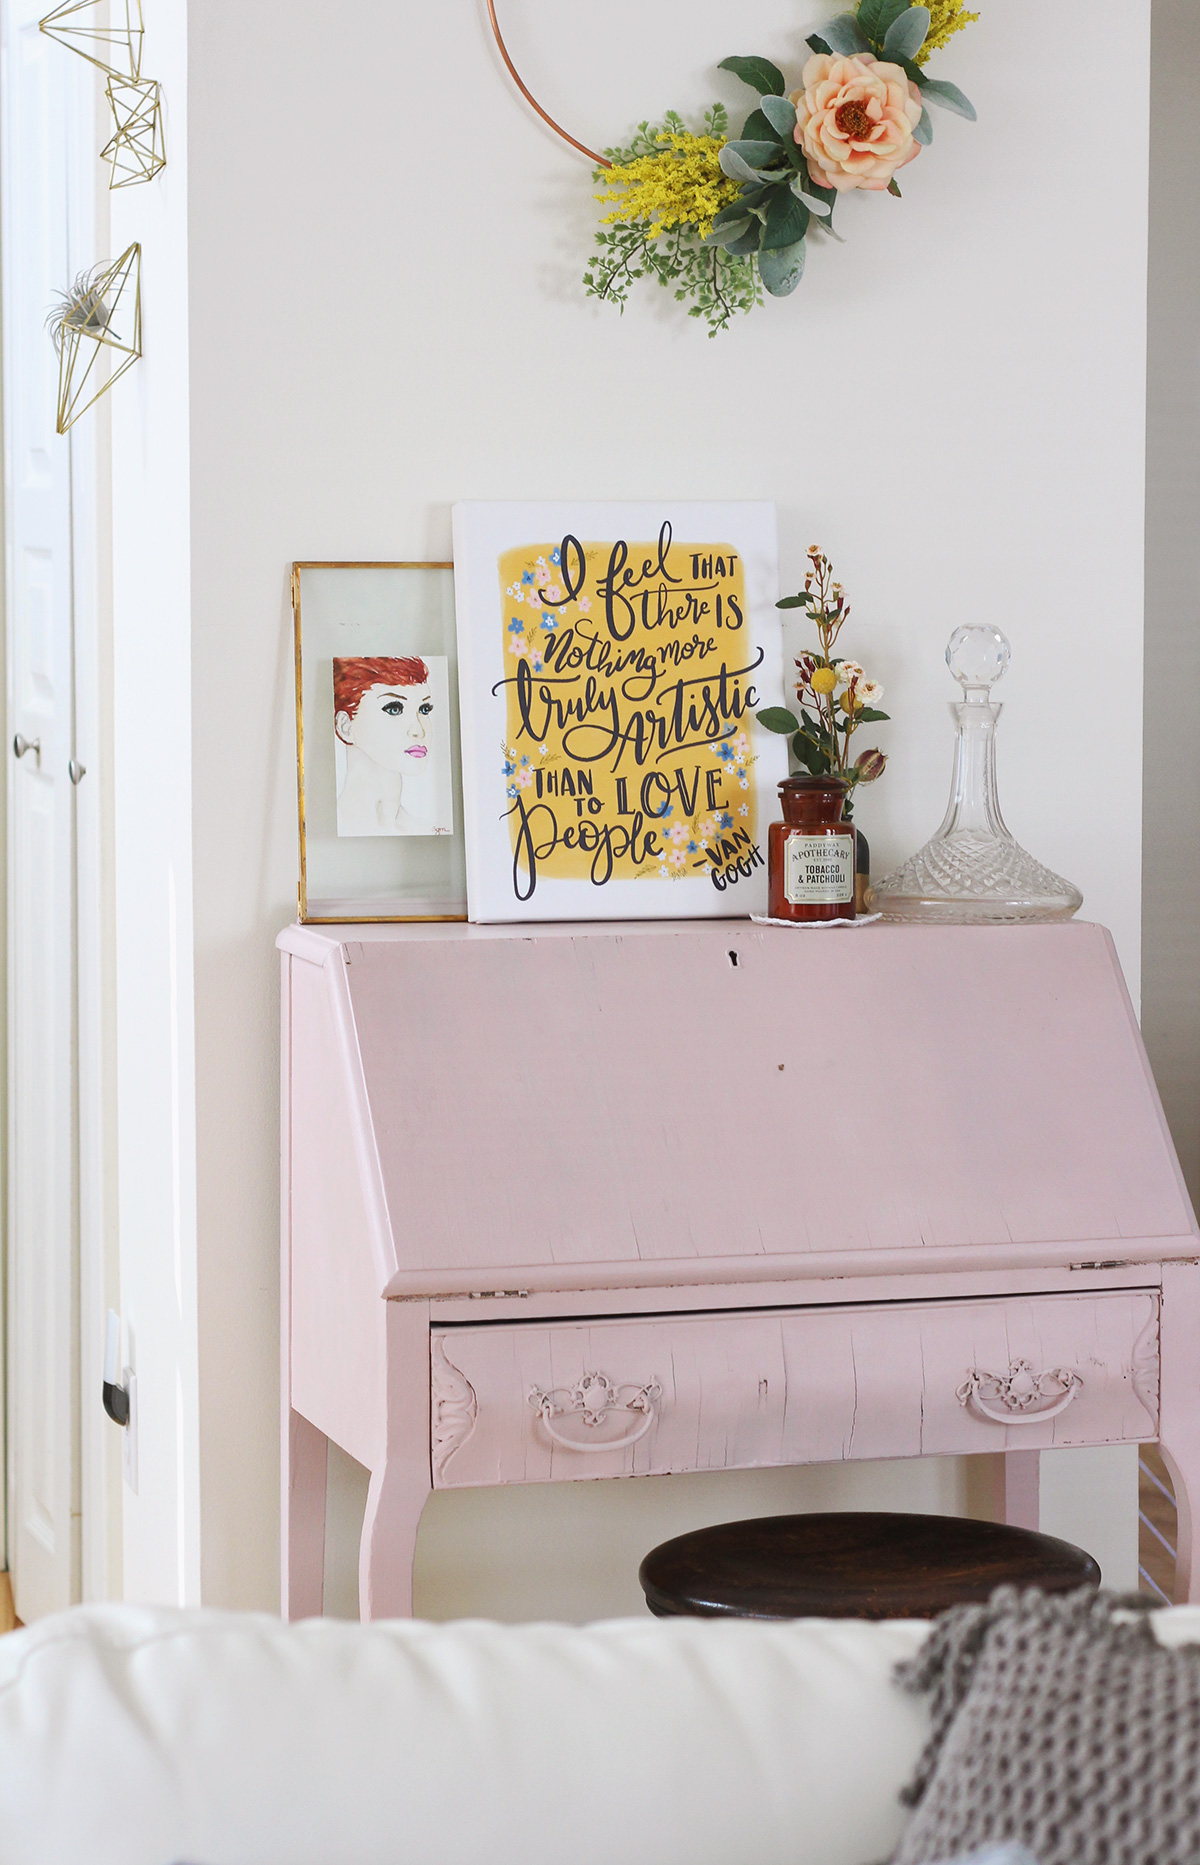 My Antique Letter Writing Desk & Tips For Setting Up Your Own Letter Writing Station